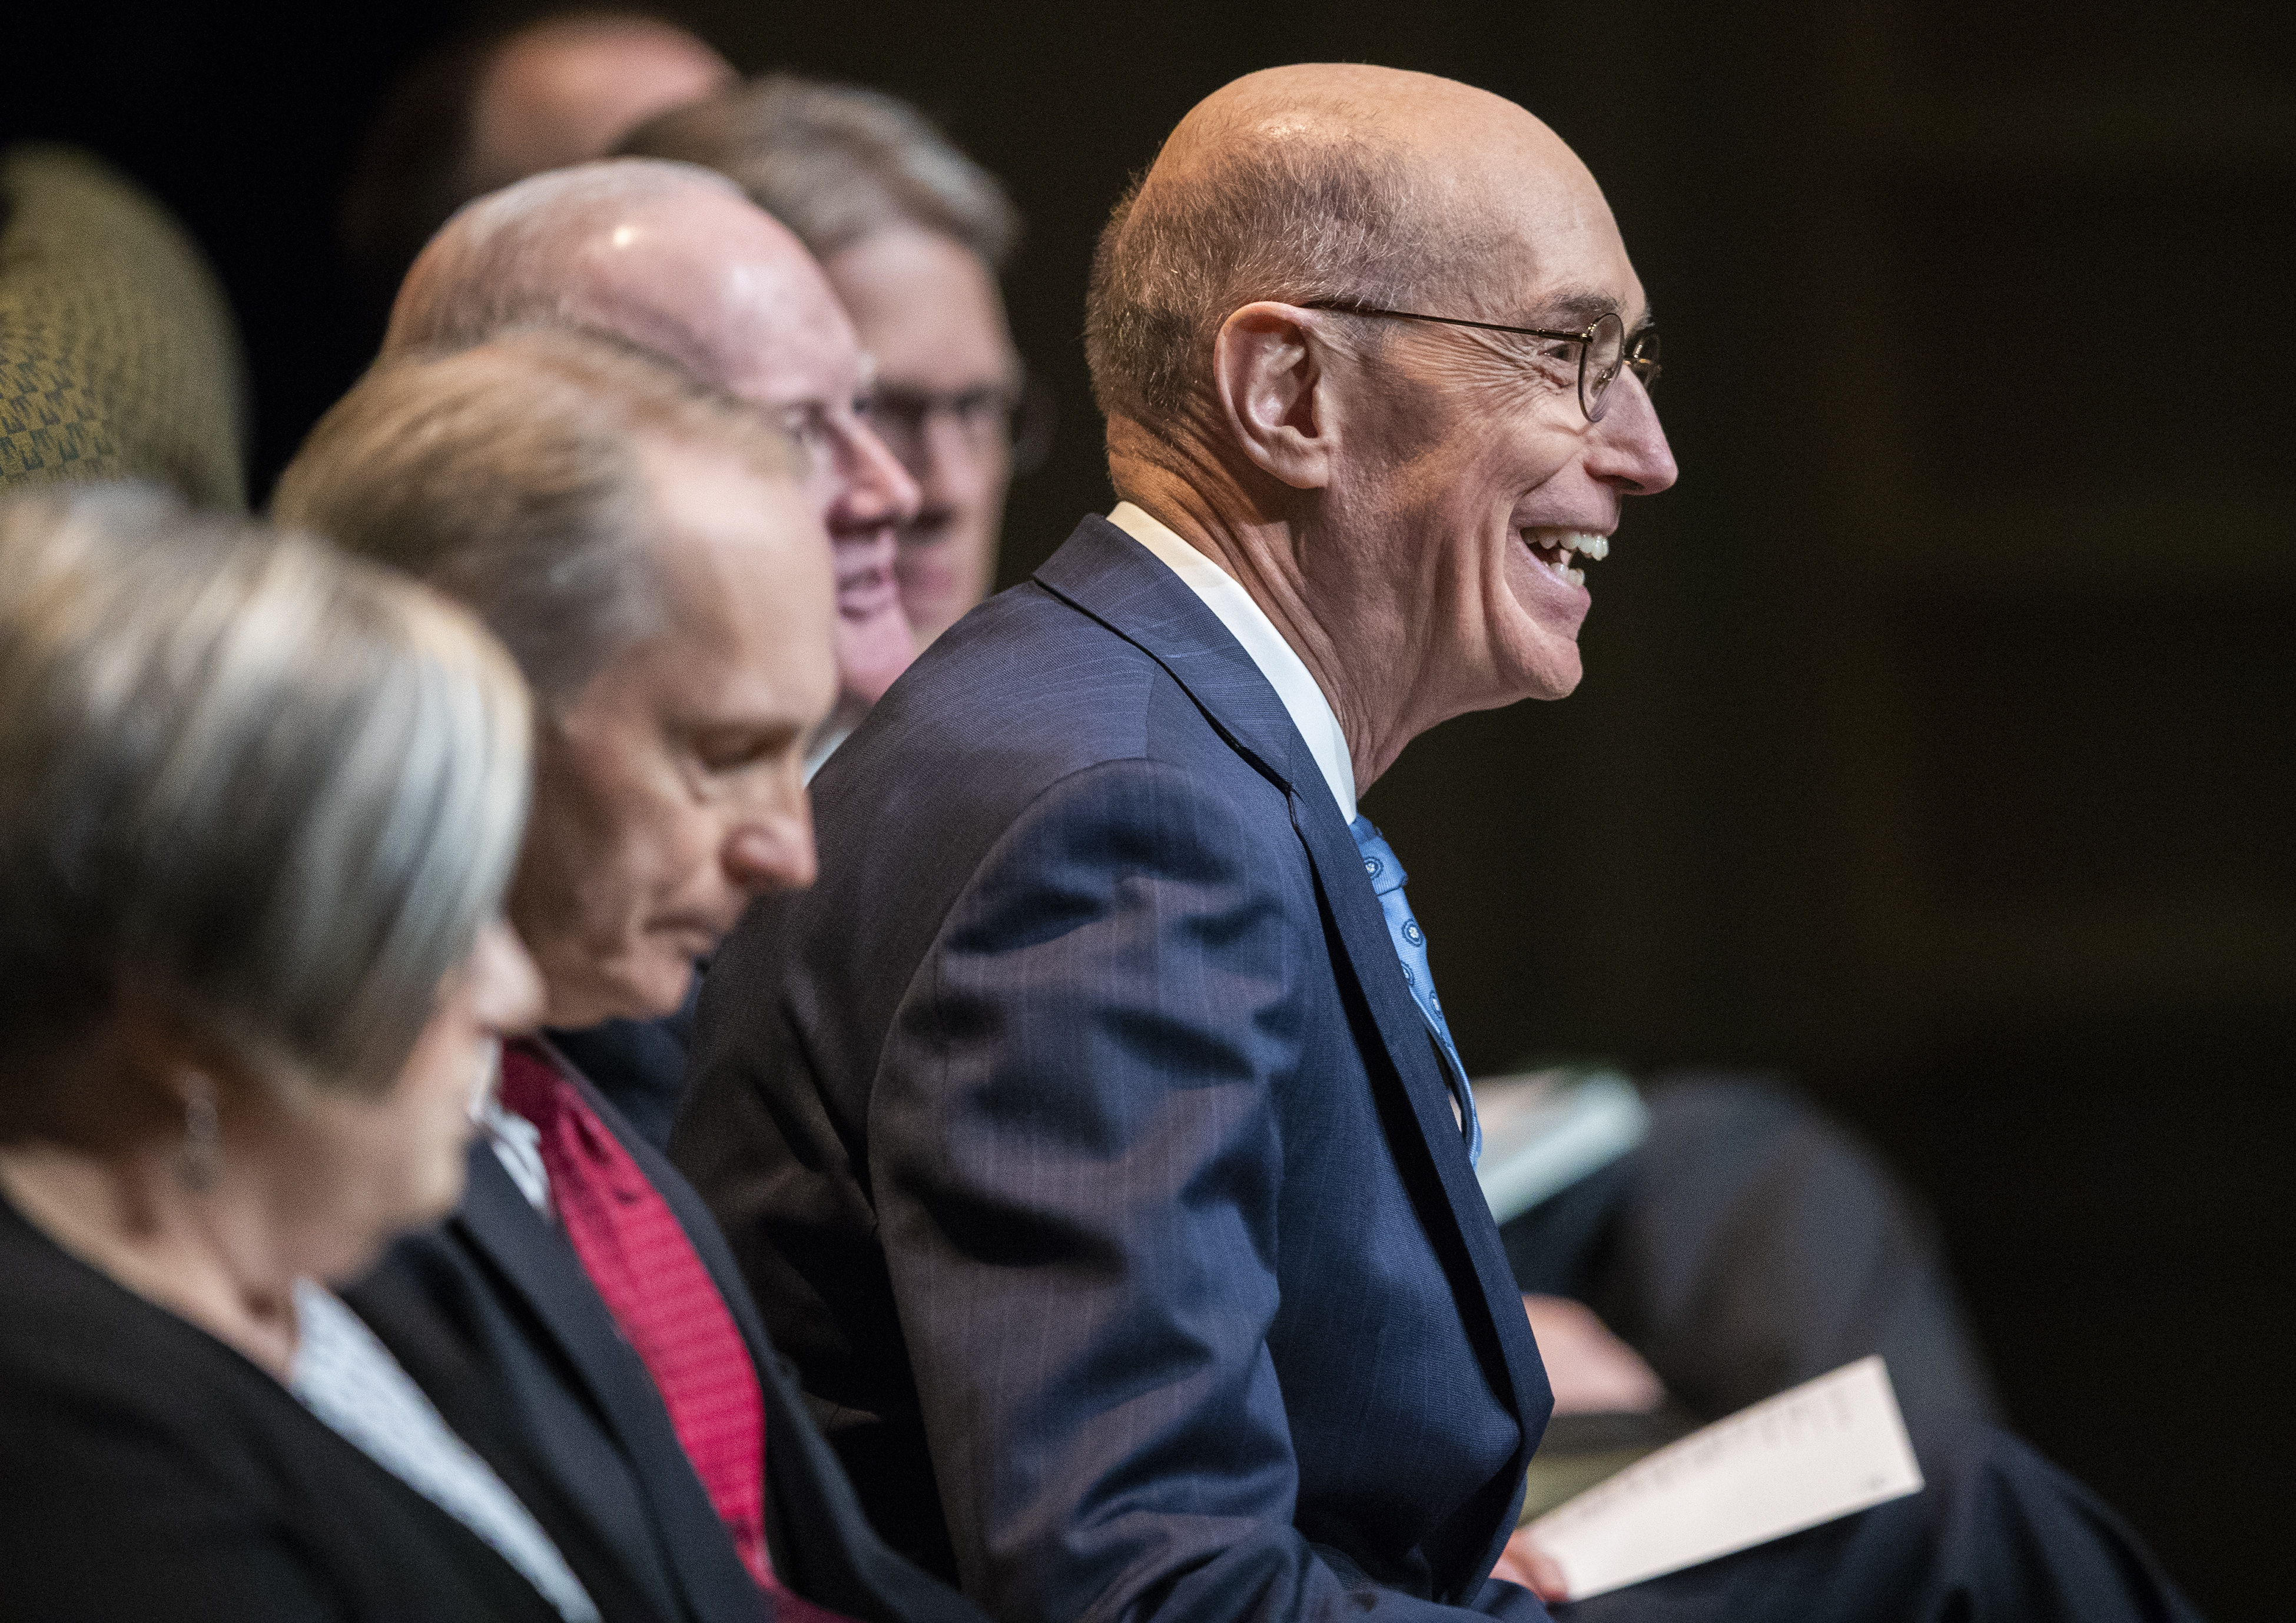 President Henry B. Eyring smiles at the audience as he takes his seat prior to speaking to LDS Business College students during a devotional in the Conference Center theater in Salt Lake City on Tuesday, Nov. 6, 2018.